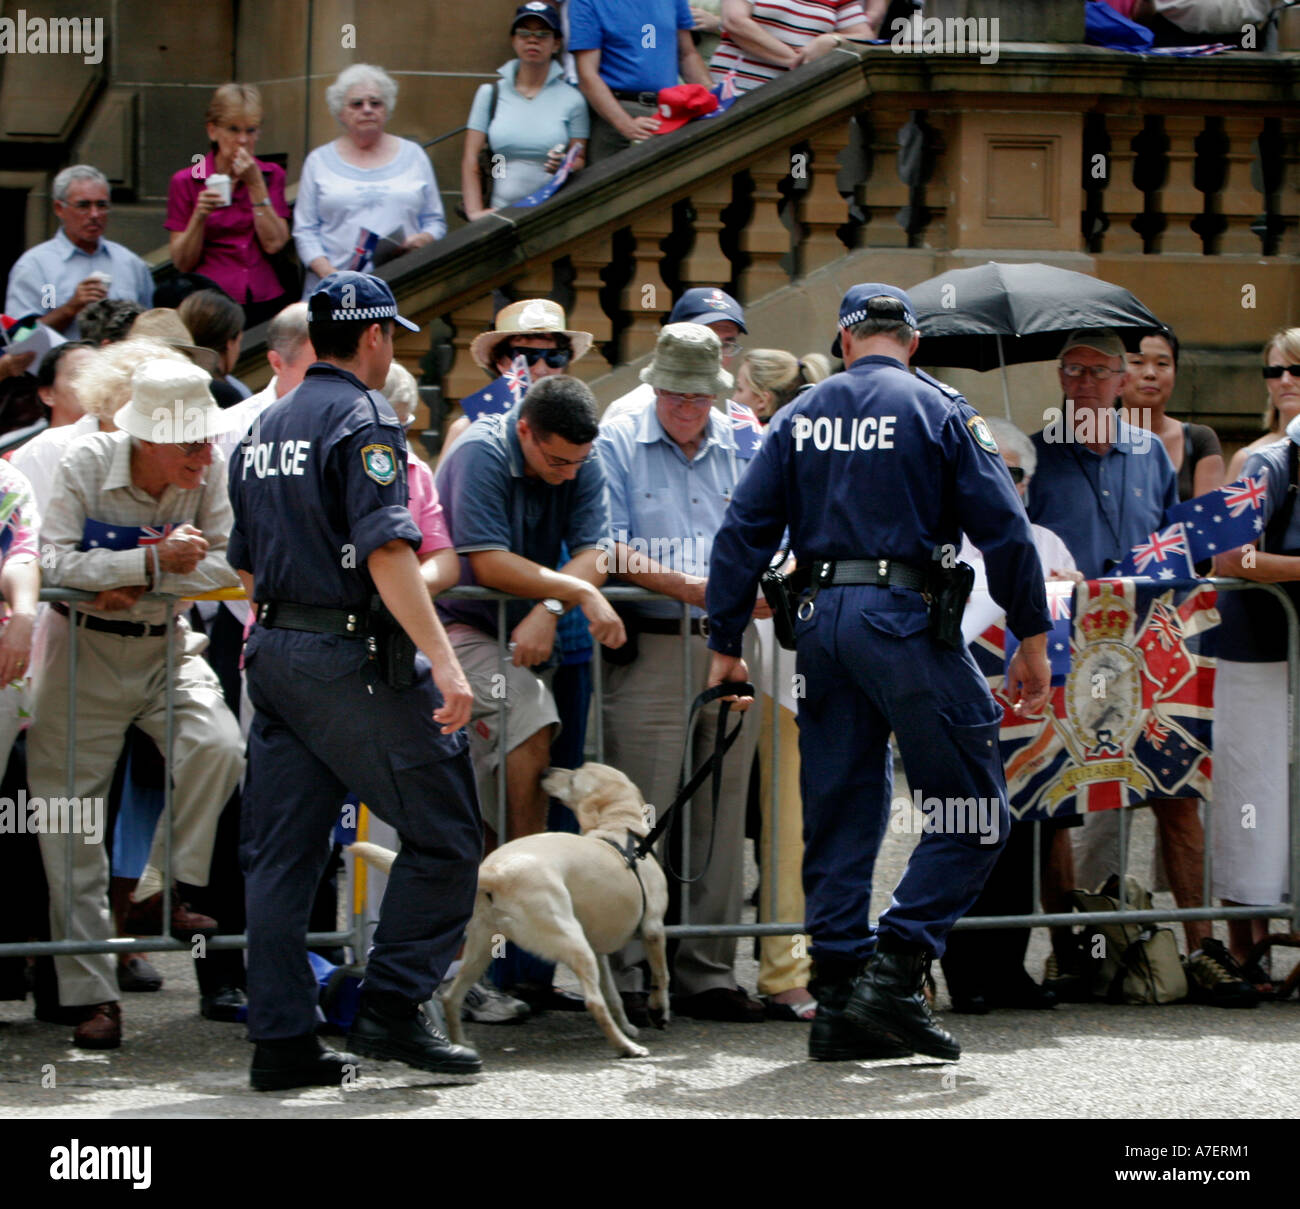 Police dogs in explosives check - Stock Image